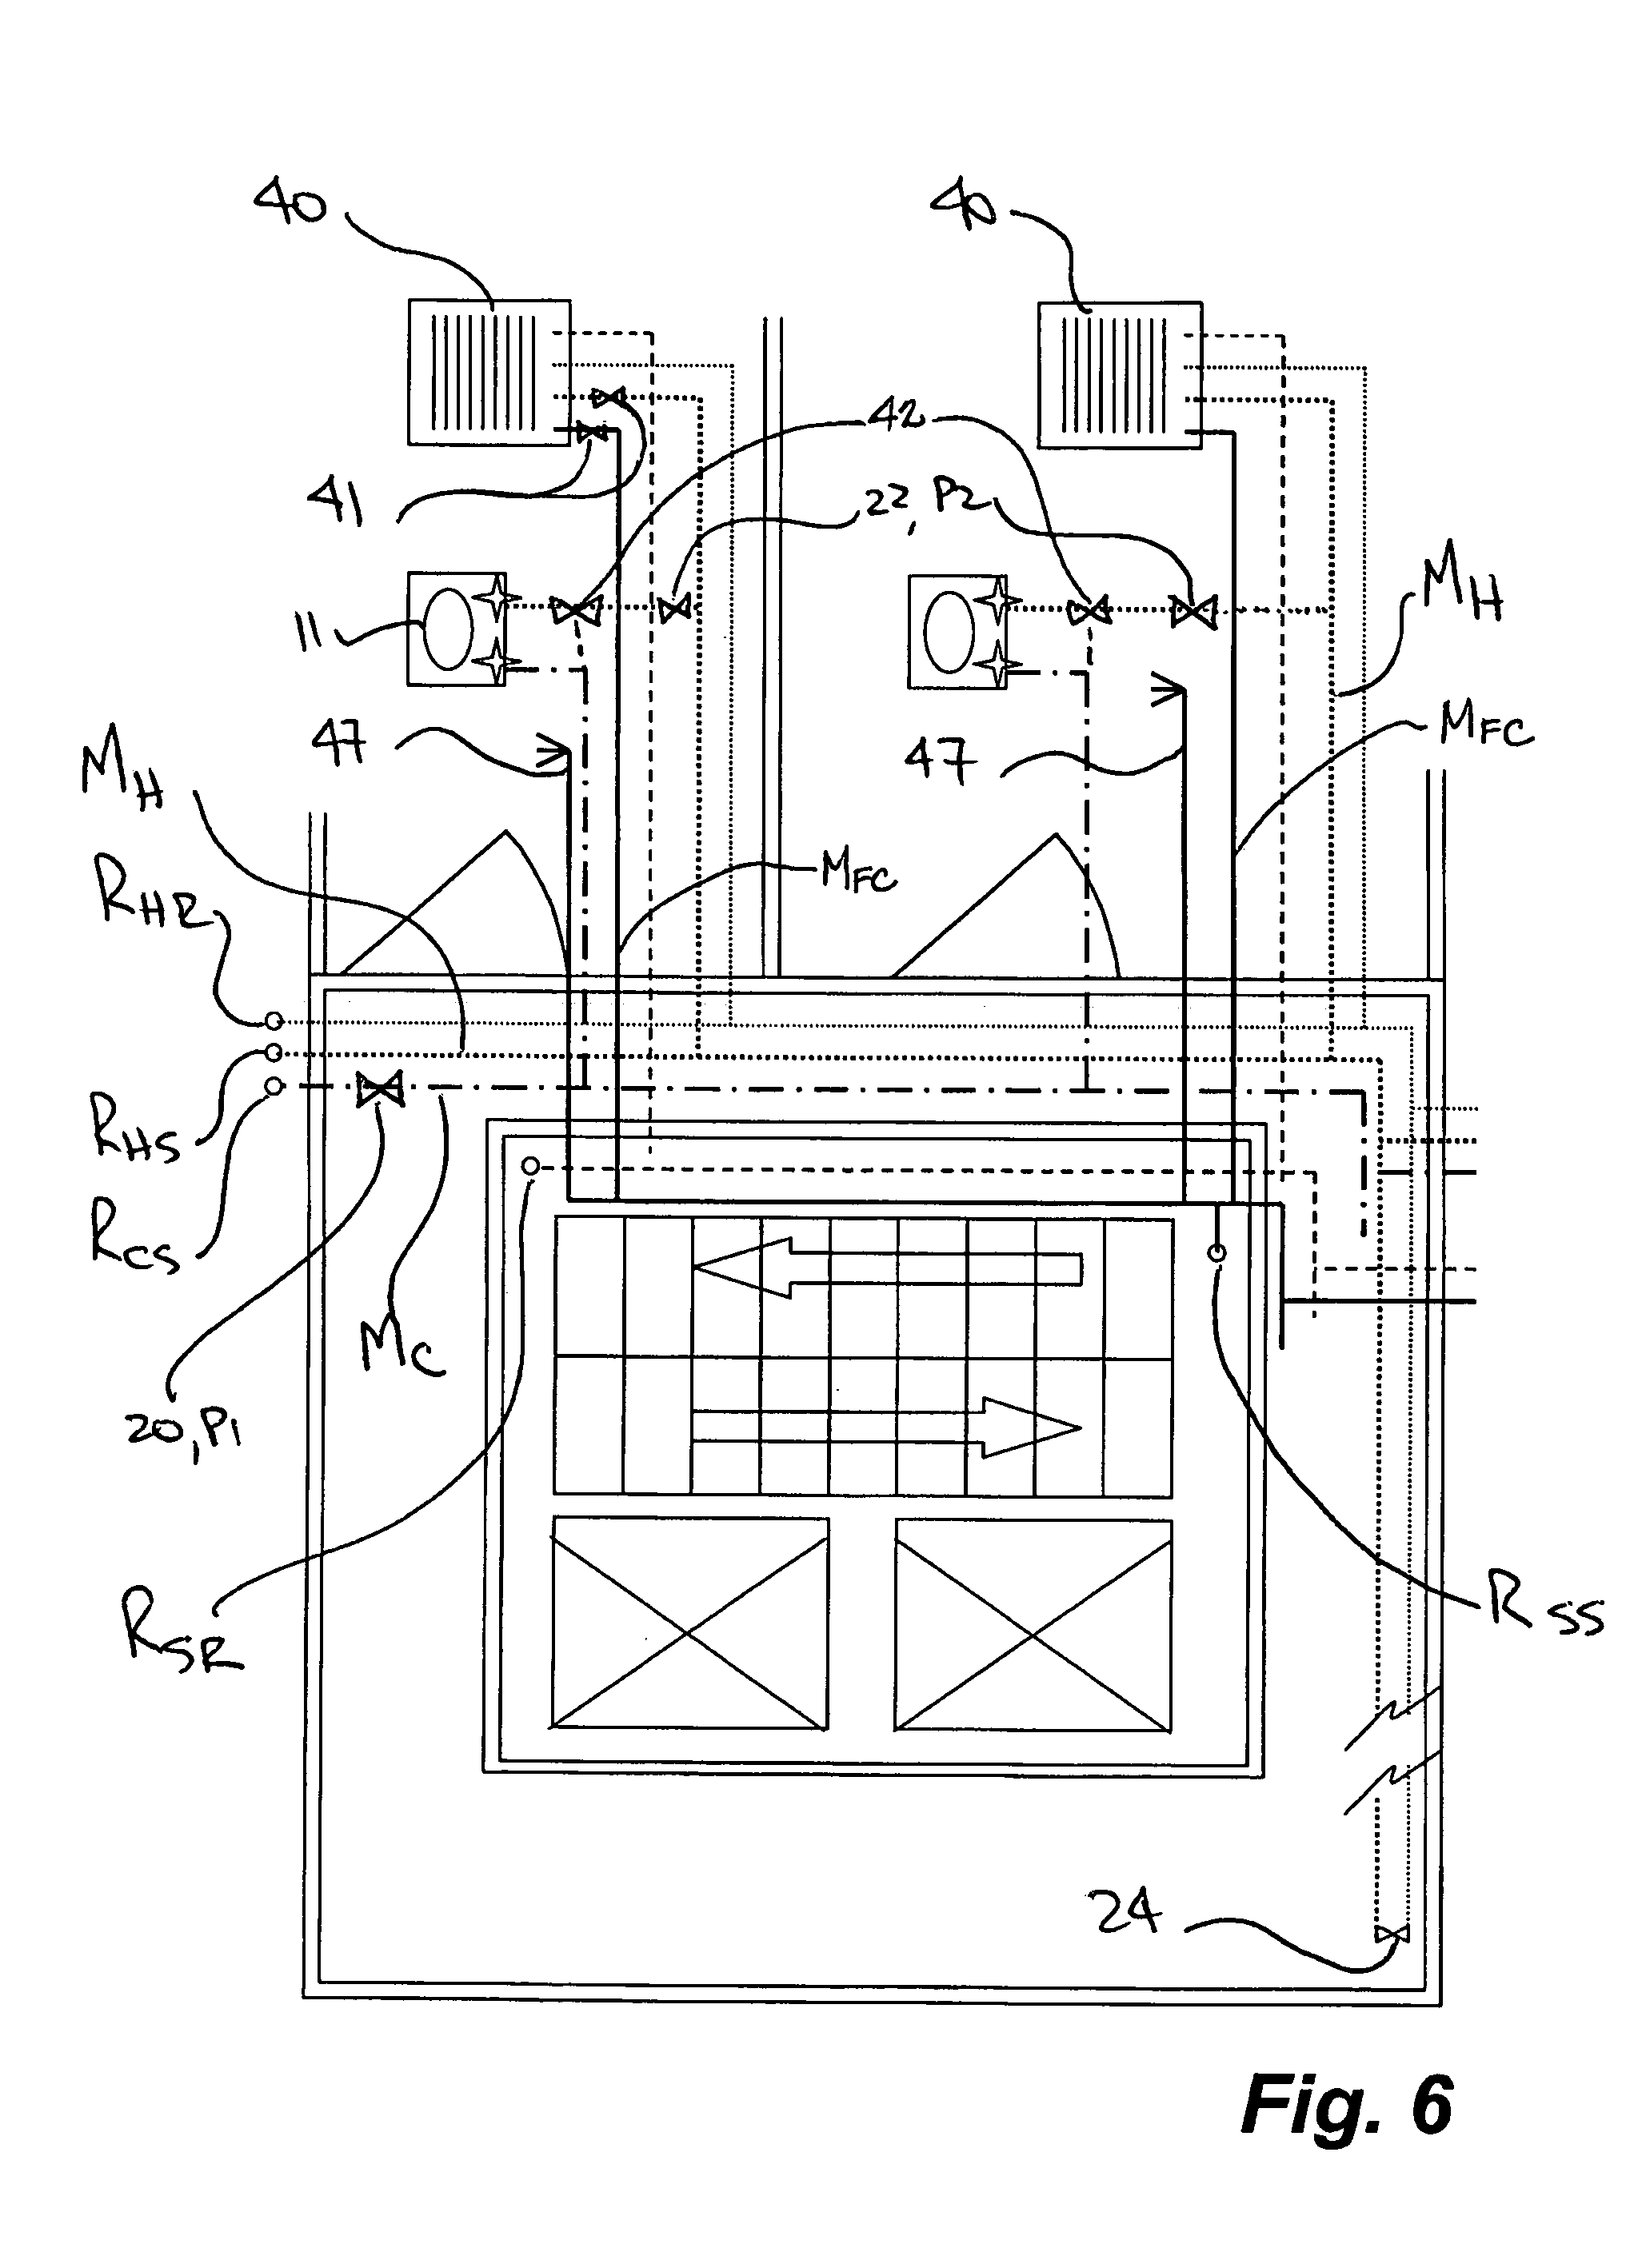 Domestic Water Supply System Riser Diagram